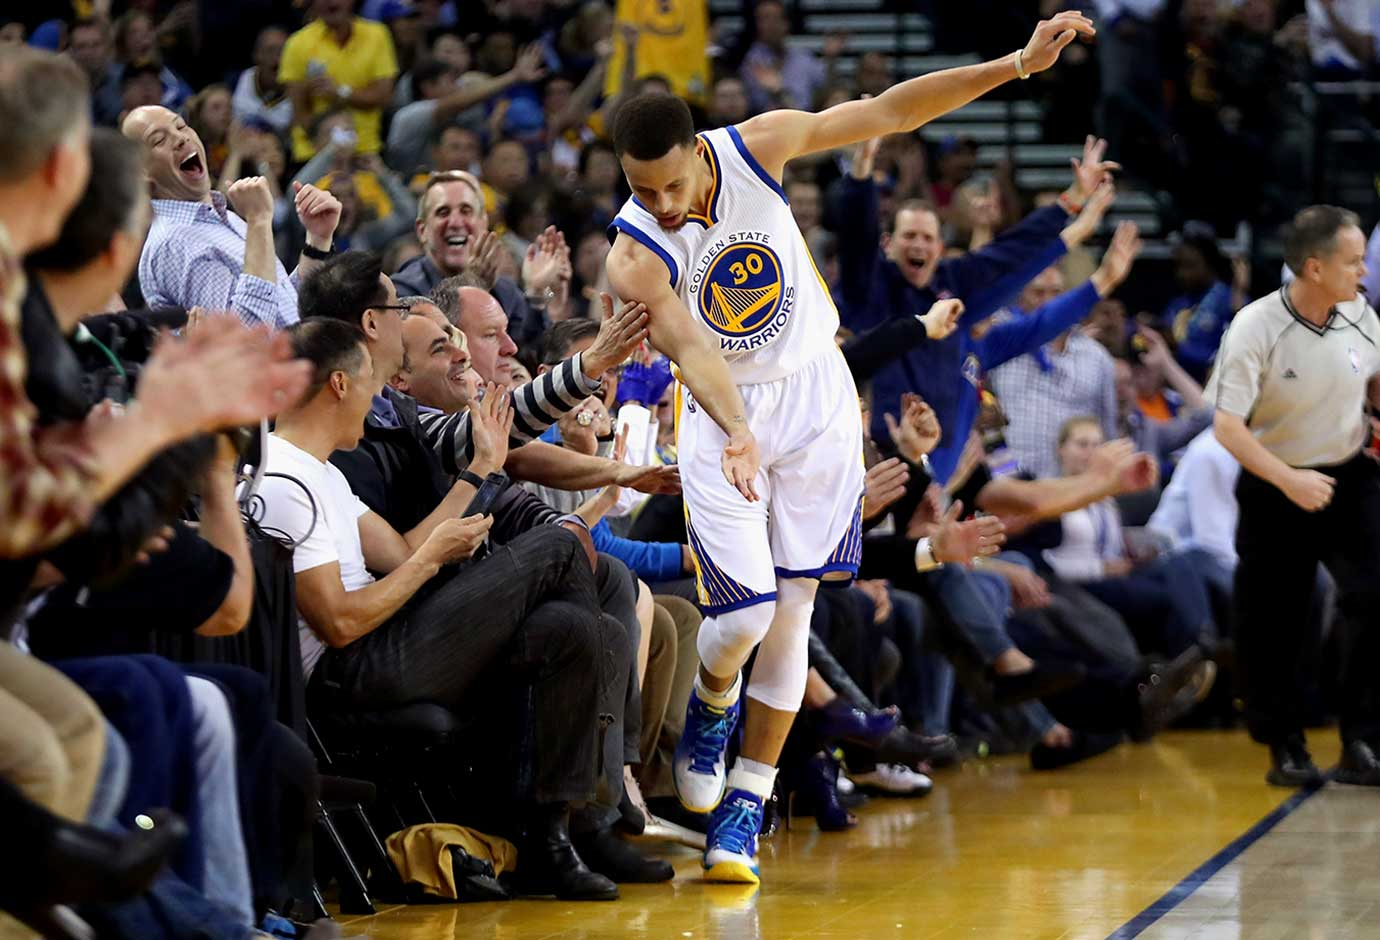 Here are some of the images that caught our eye during the sports night of March 3, starting with Steph Curry trying not to step on the patrons after making a three-point basket against the Oklahoma City Thunder.